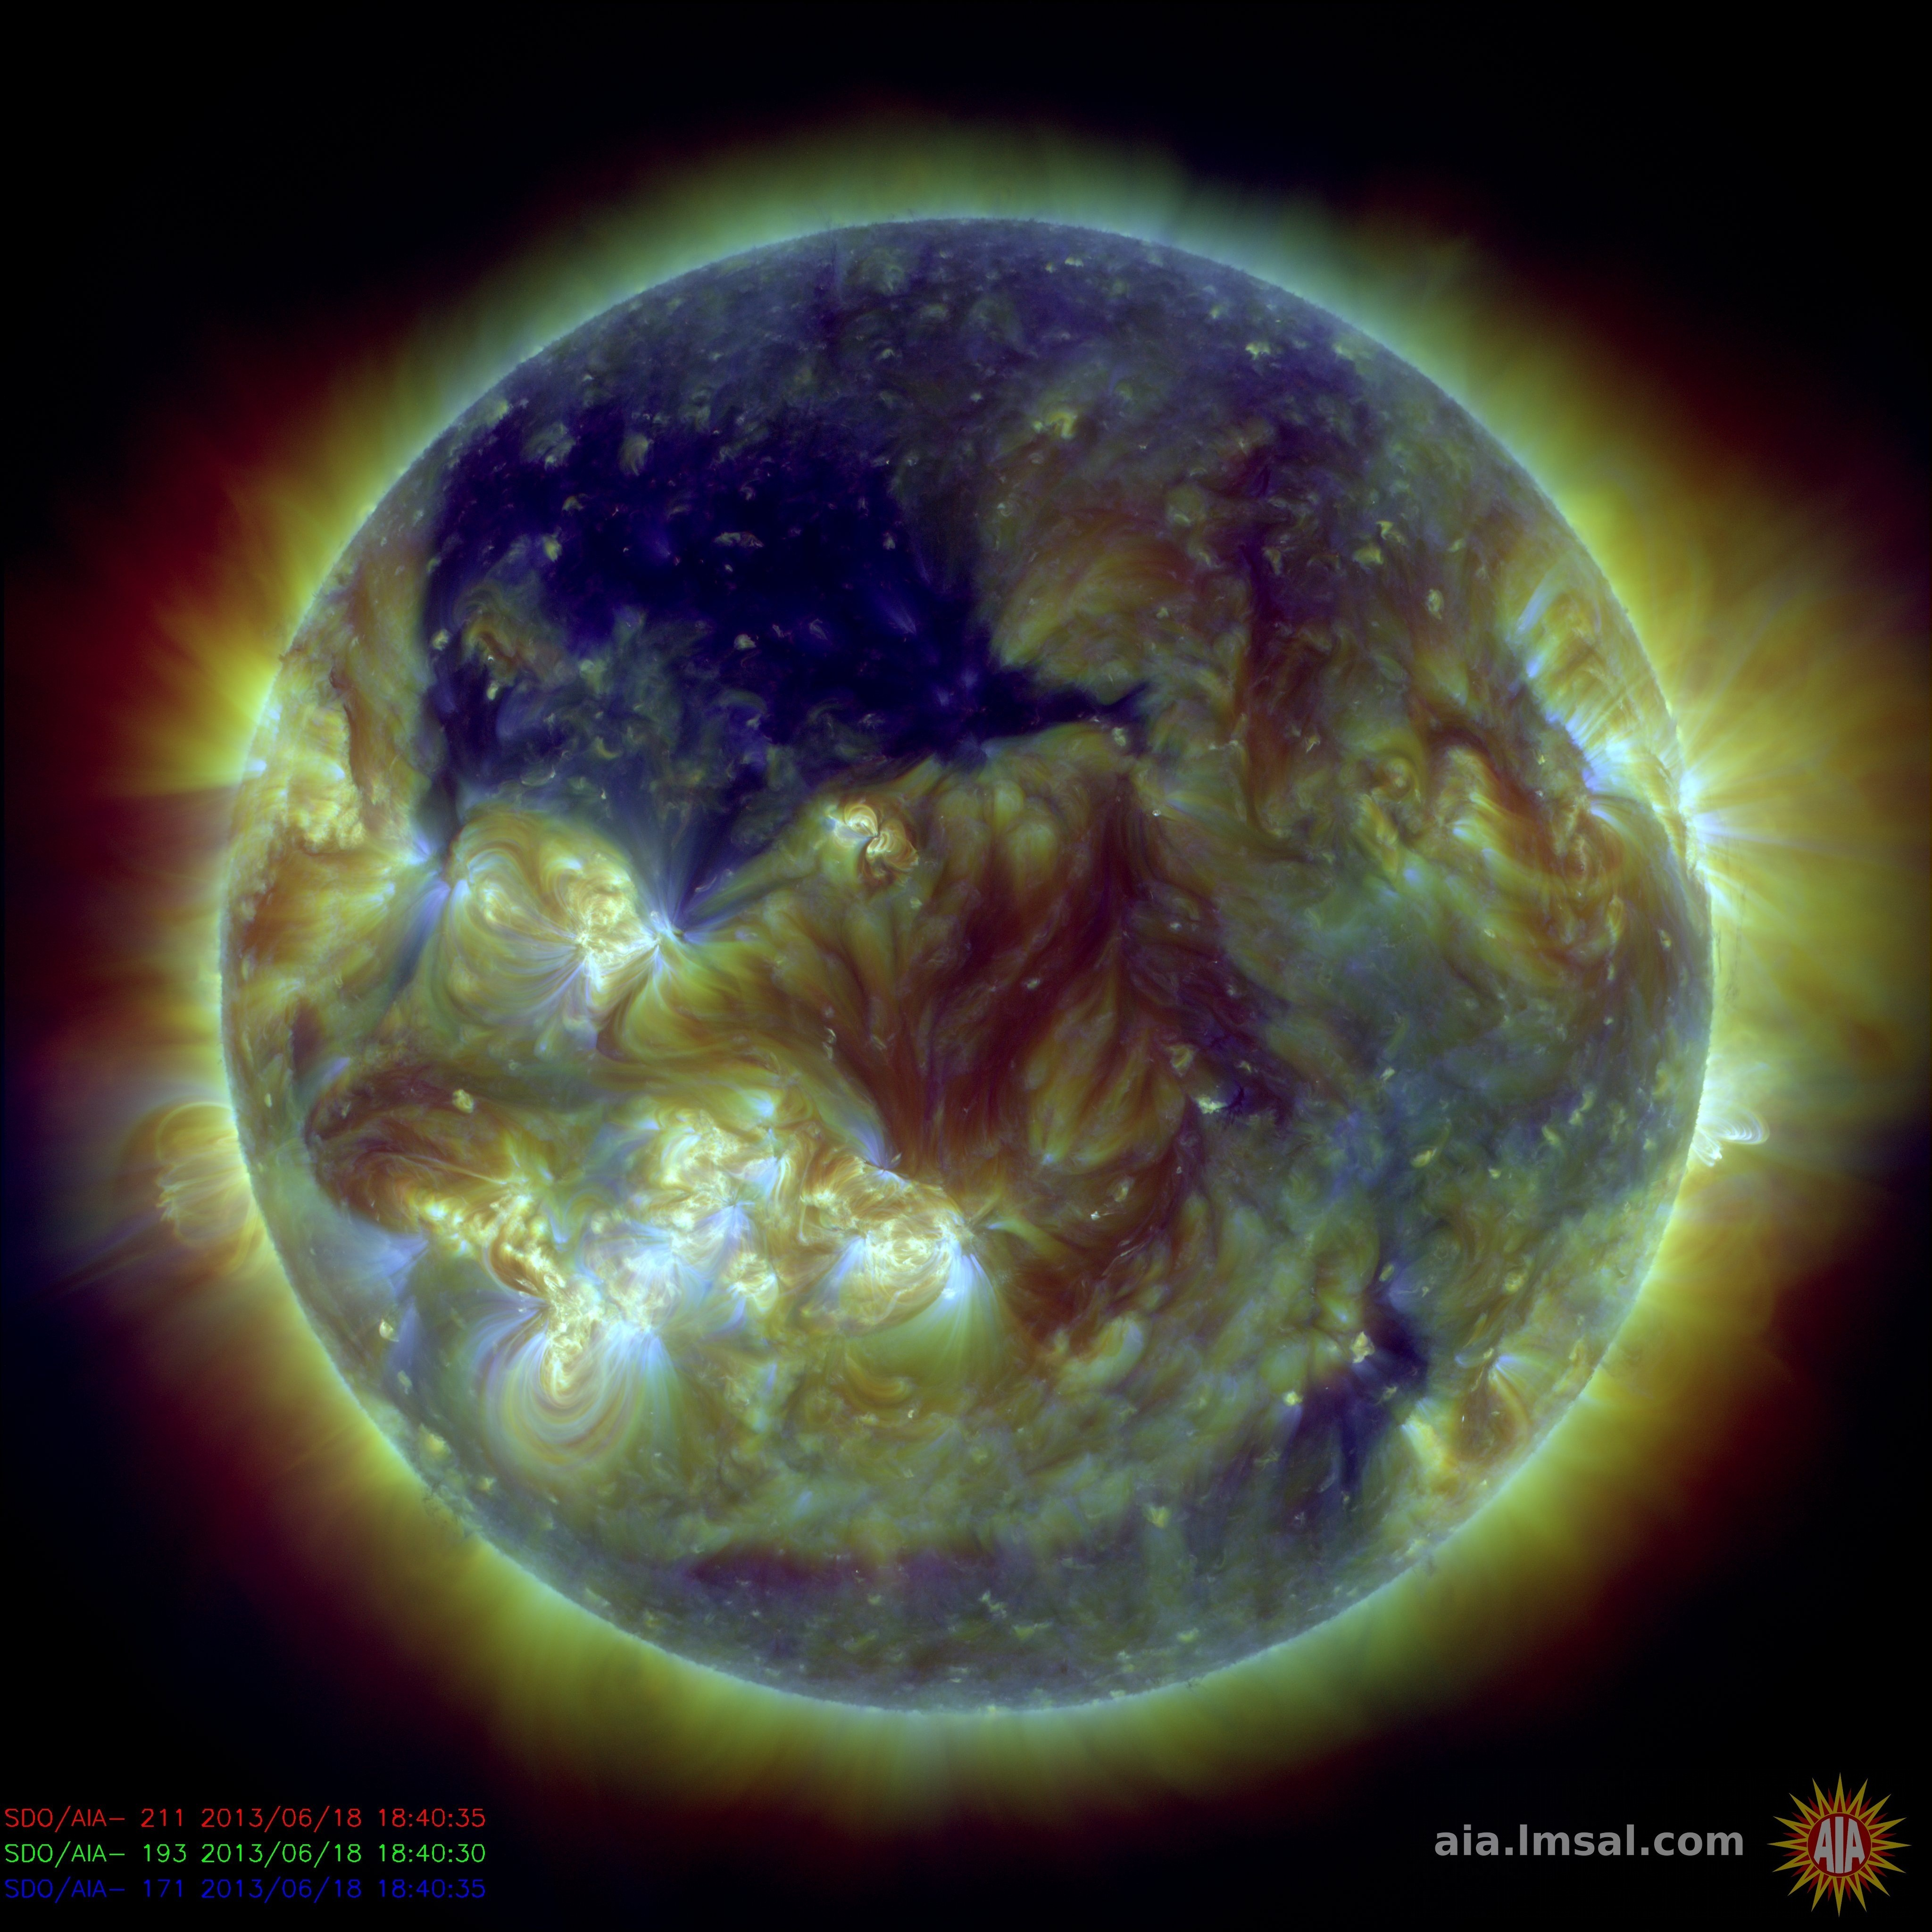 NASA's Solar Dynamics Observatory captured this picture of the sun on June 18. The dark blue area in the upper left quadrant of the sun is a huge coronal hole more than 400,000 miles across. Coronal holes are areas of the sun's outermost atmospheric layer -- the corona -- where the magnetic field opens up and solar material quickly flows out.